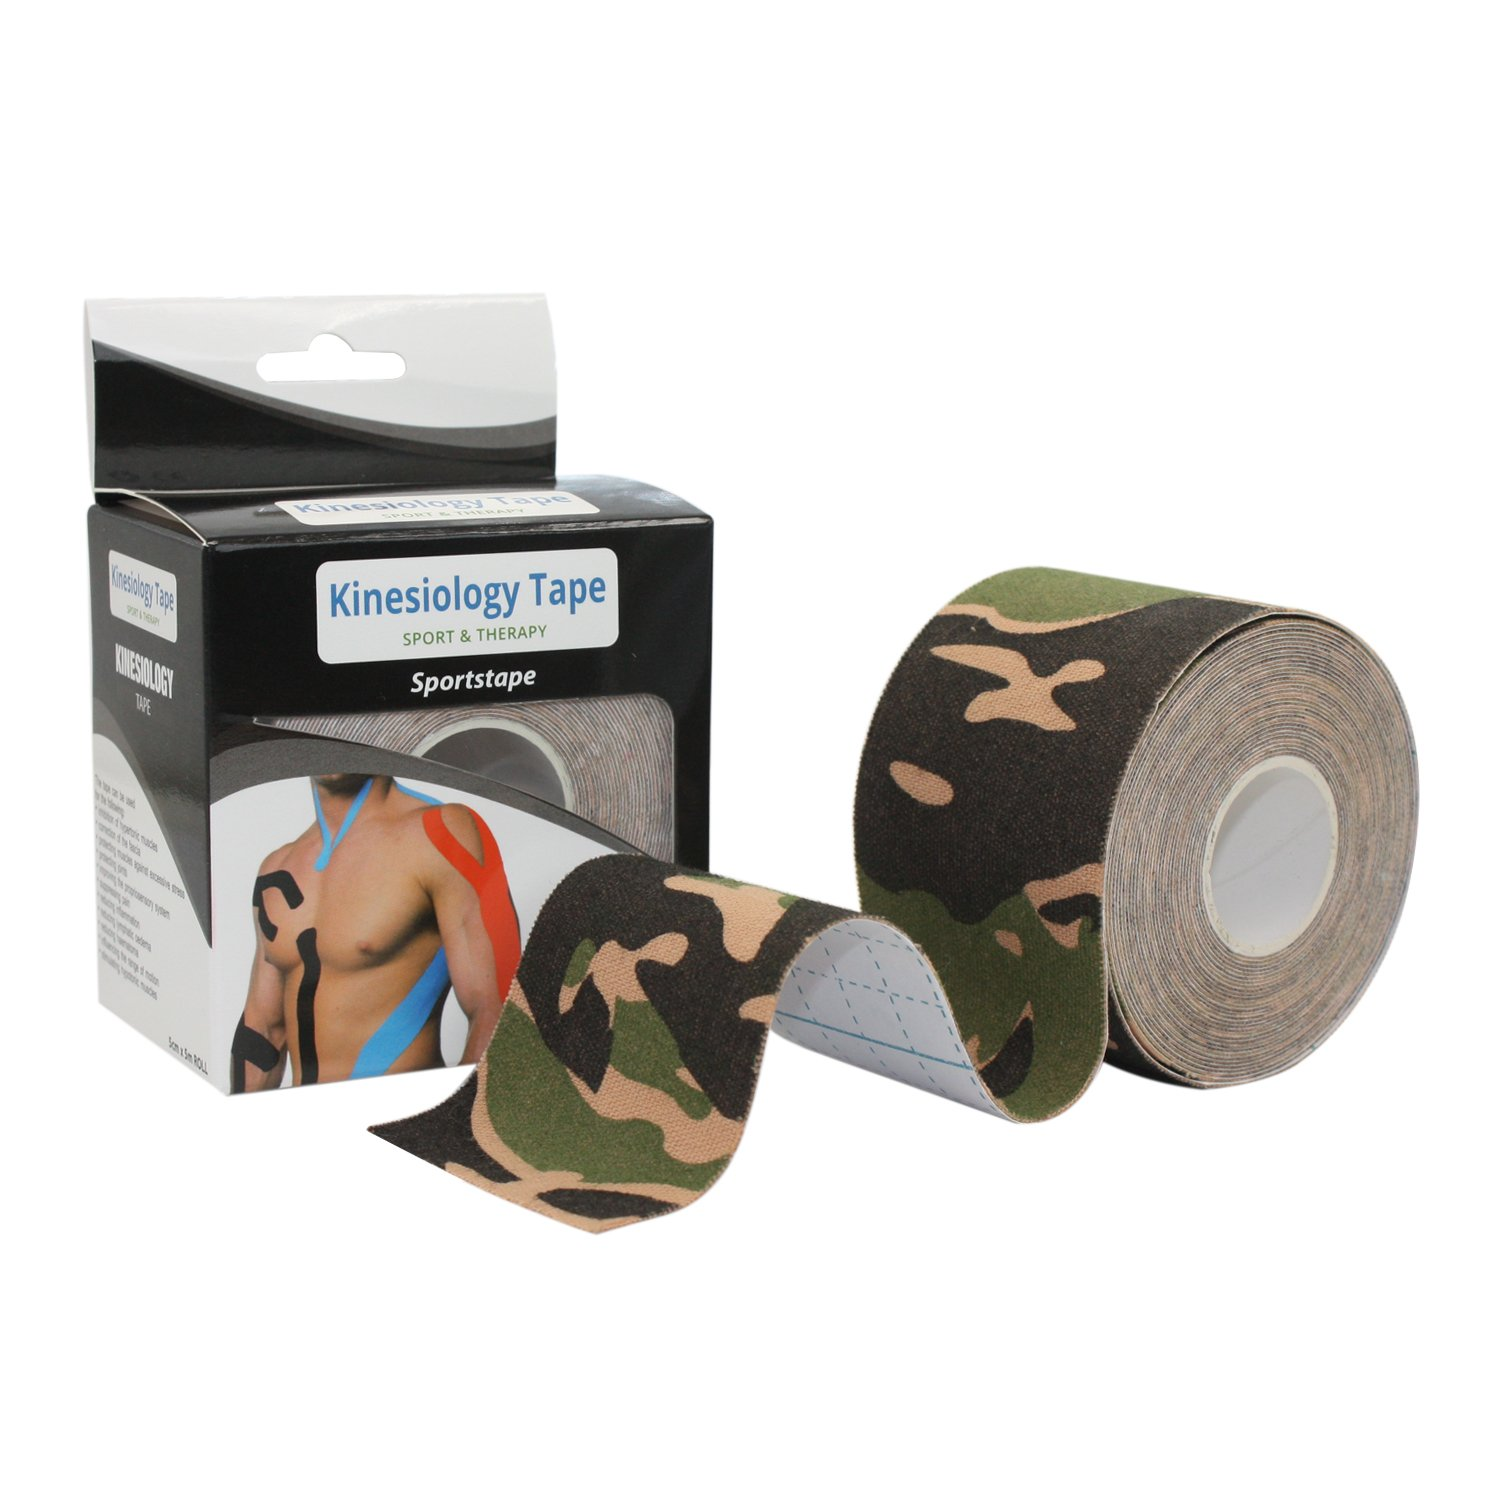 Kinesiology Tape COMOmed Perfect for Athletic Sports, 5cm x 5m Roll Uncut, Best Waterproof Muscle Support Adhesive, Physio Therapeutic Aid Therapy to Release Pain and Injuries,1 Pack,Camo Green